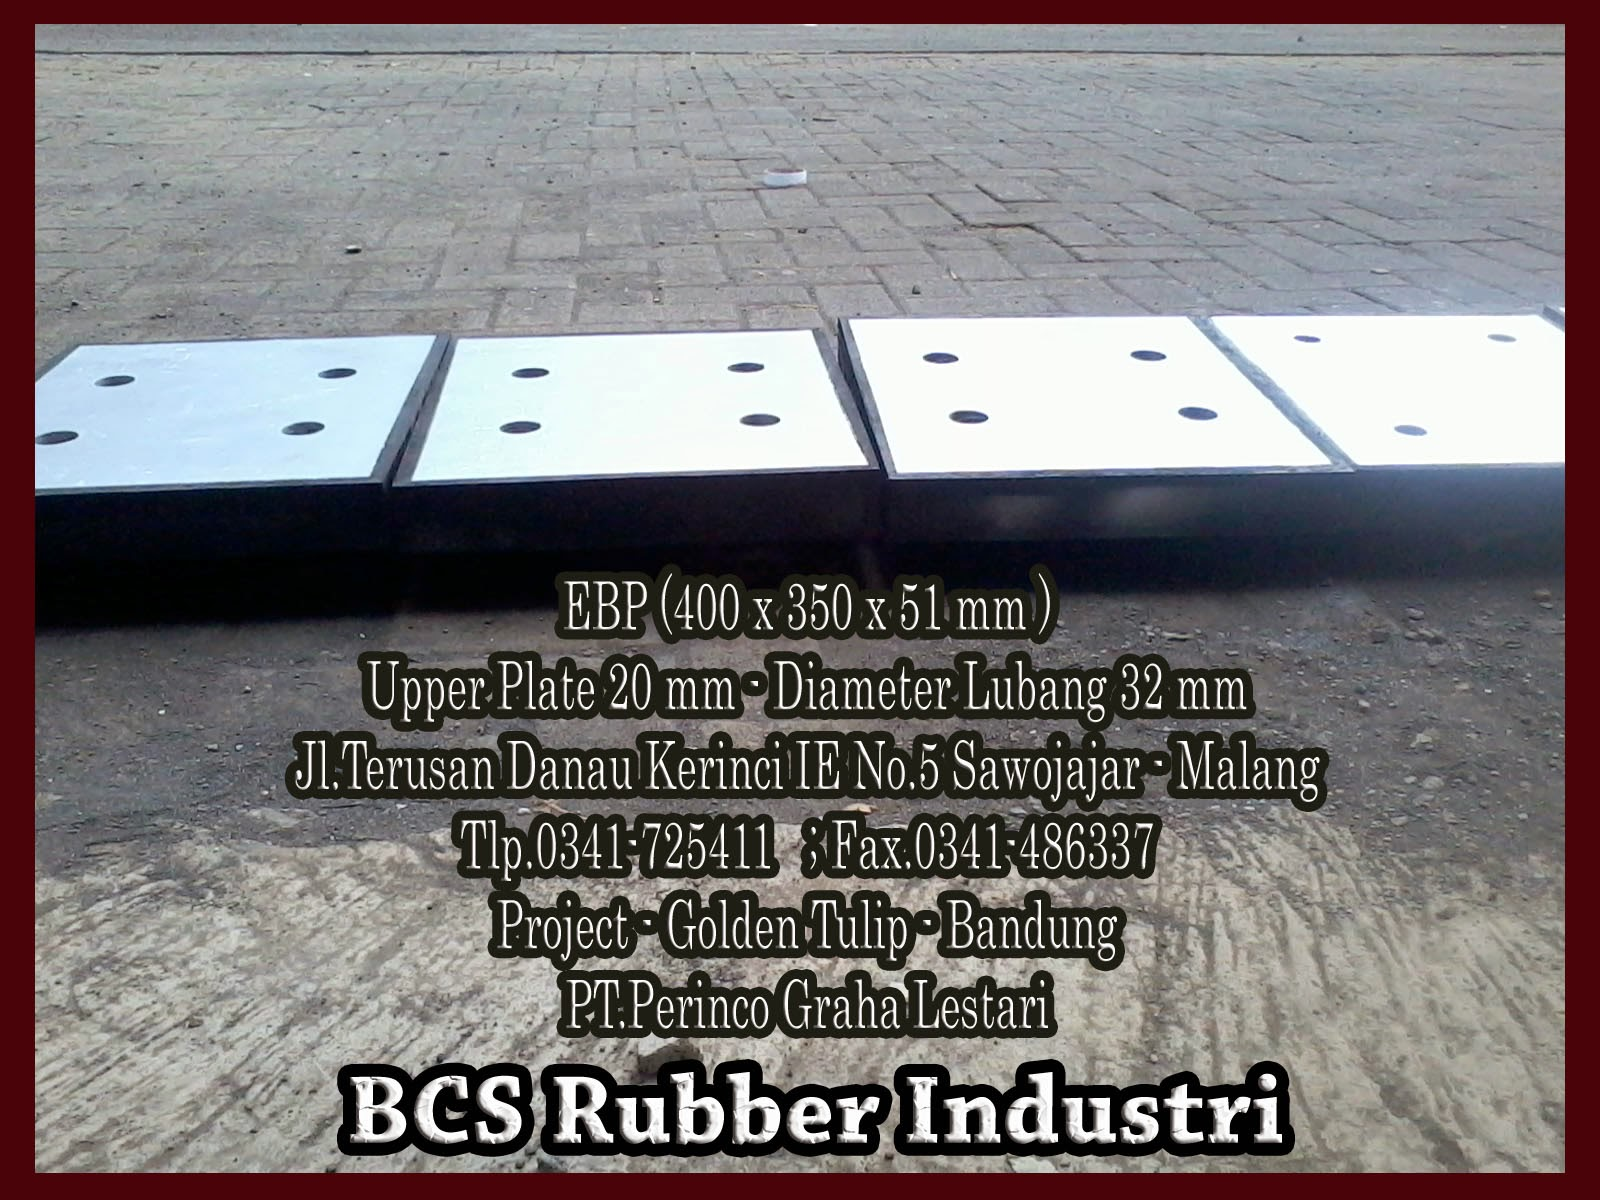 Good Quality Elastomer Bearing Pads,seismic rubber bearing pads,bantalan jembatan